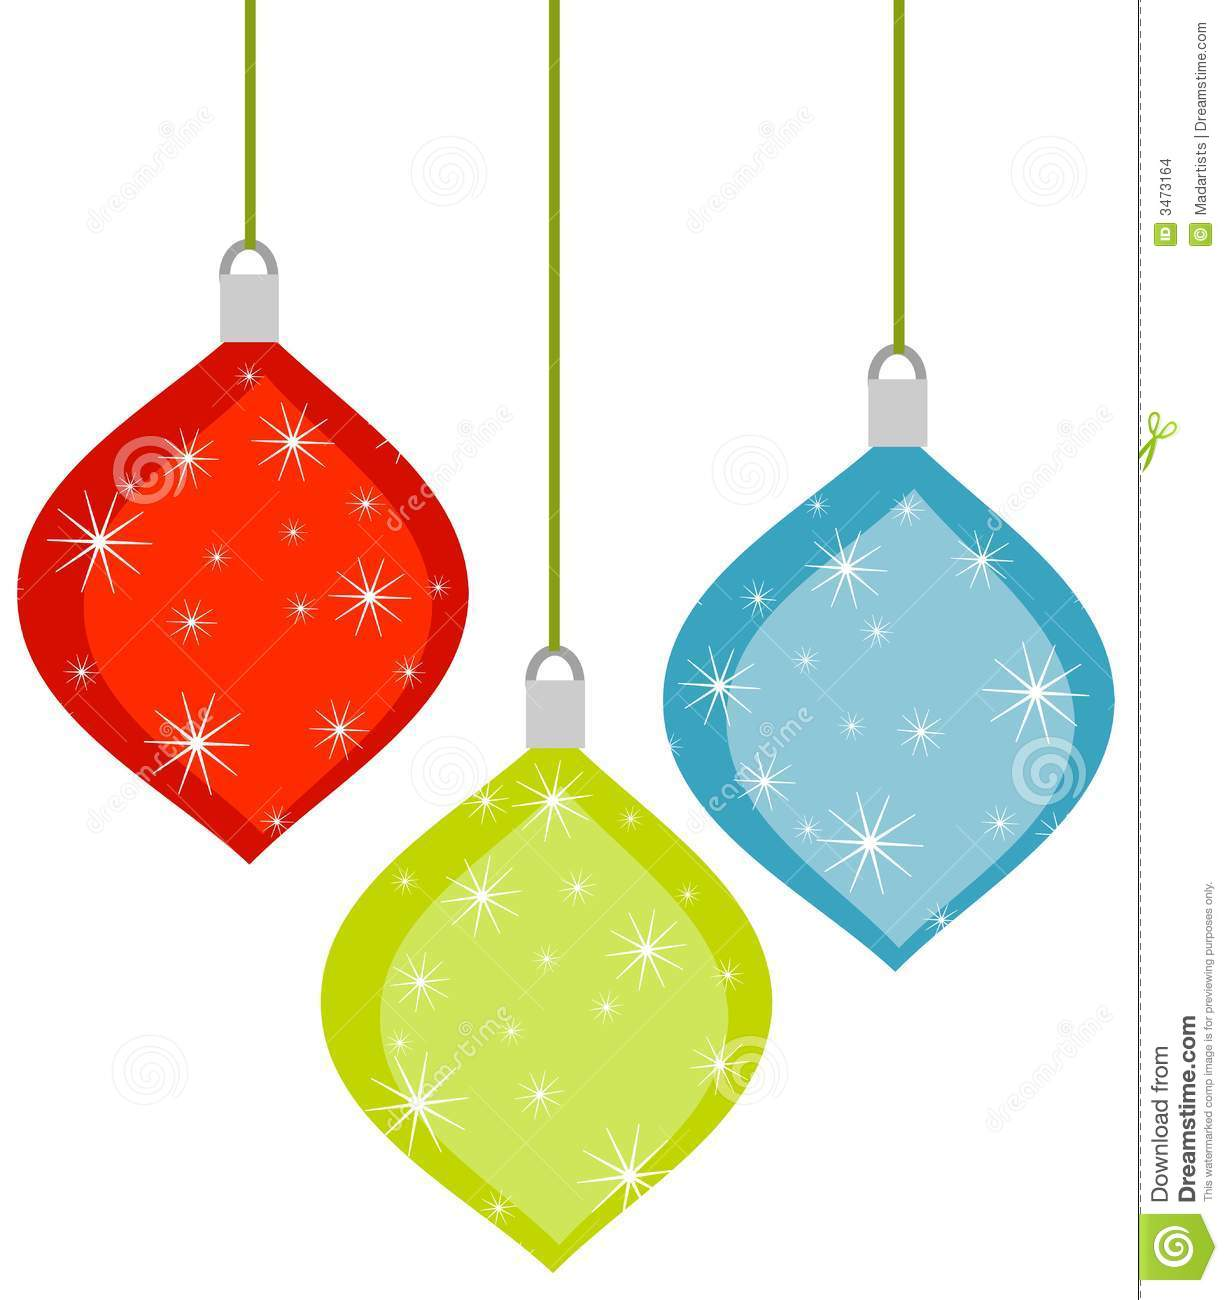 Christmas Ball Ornament Clipart Ornament clip artVintage Christmas Ornaments Clipart